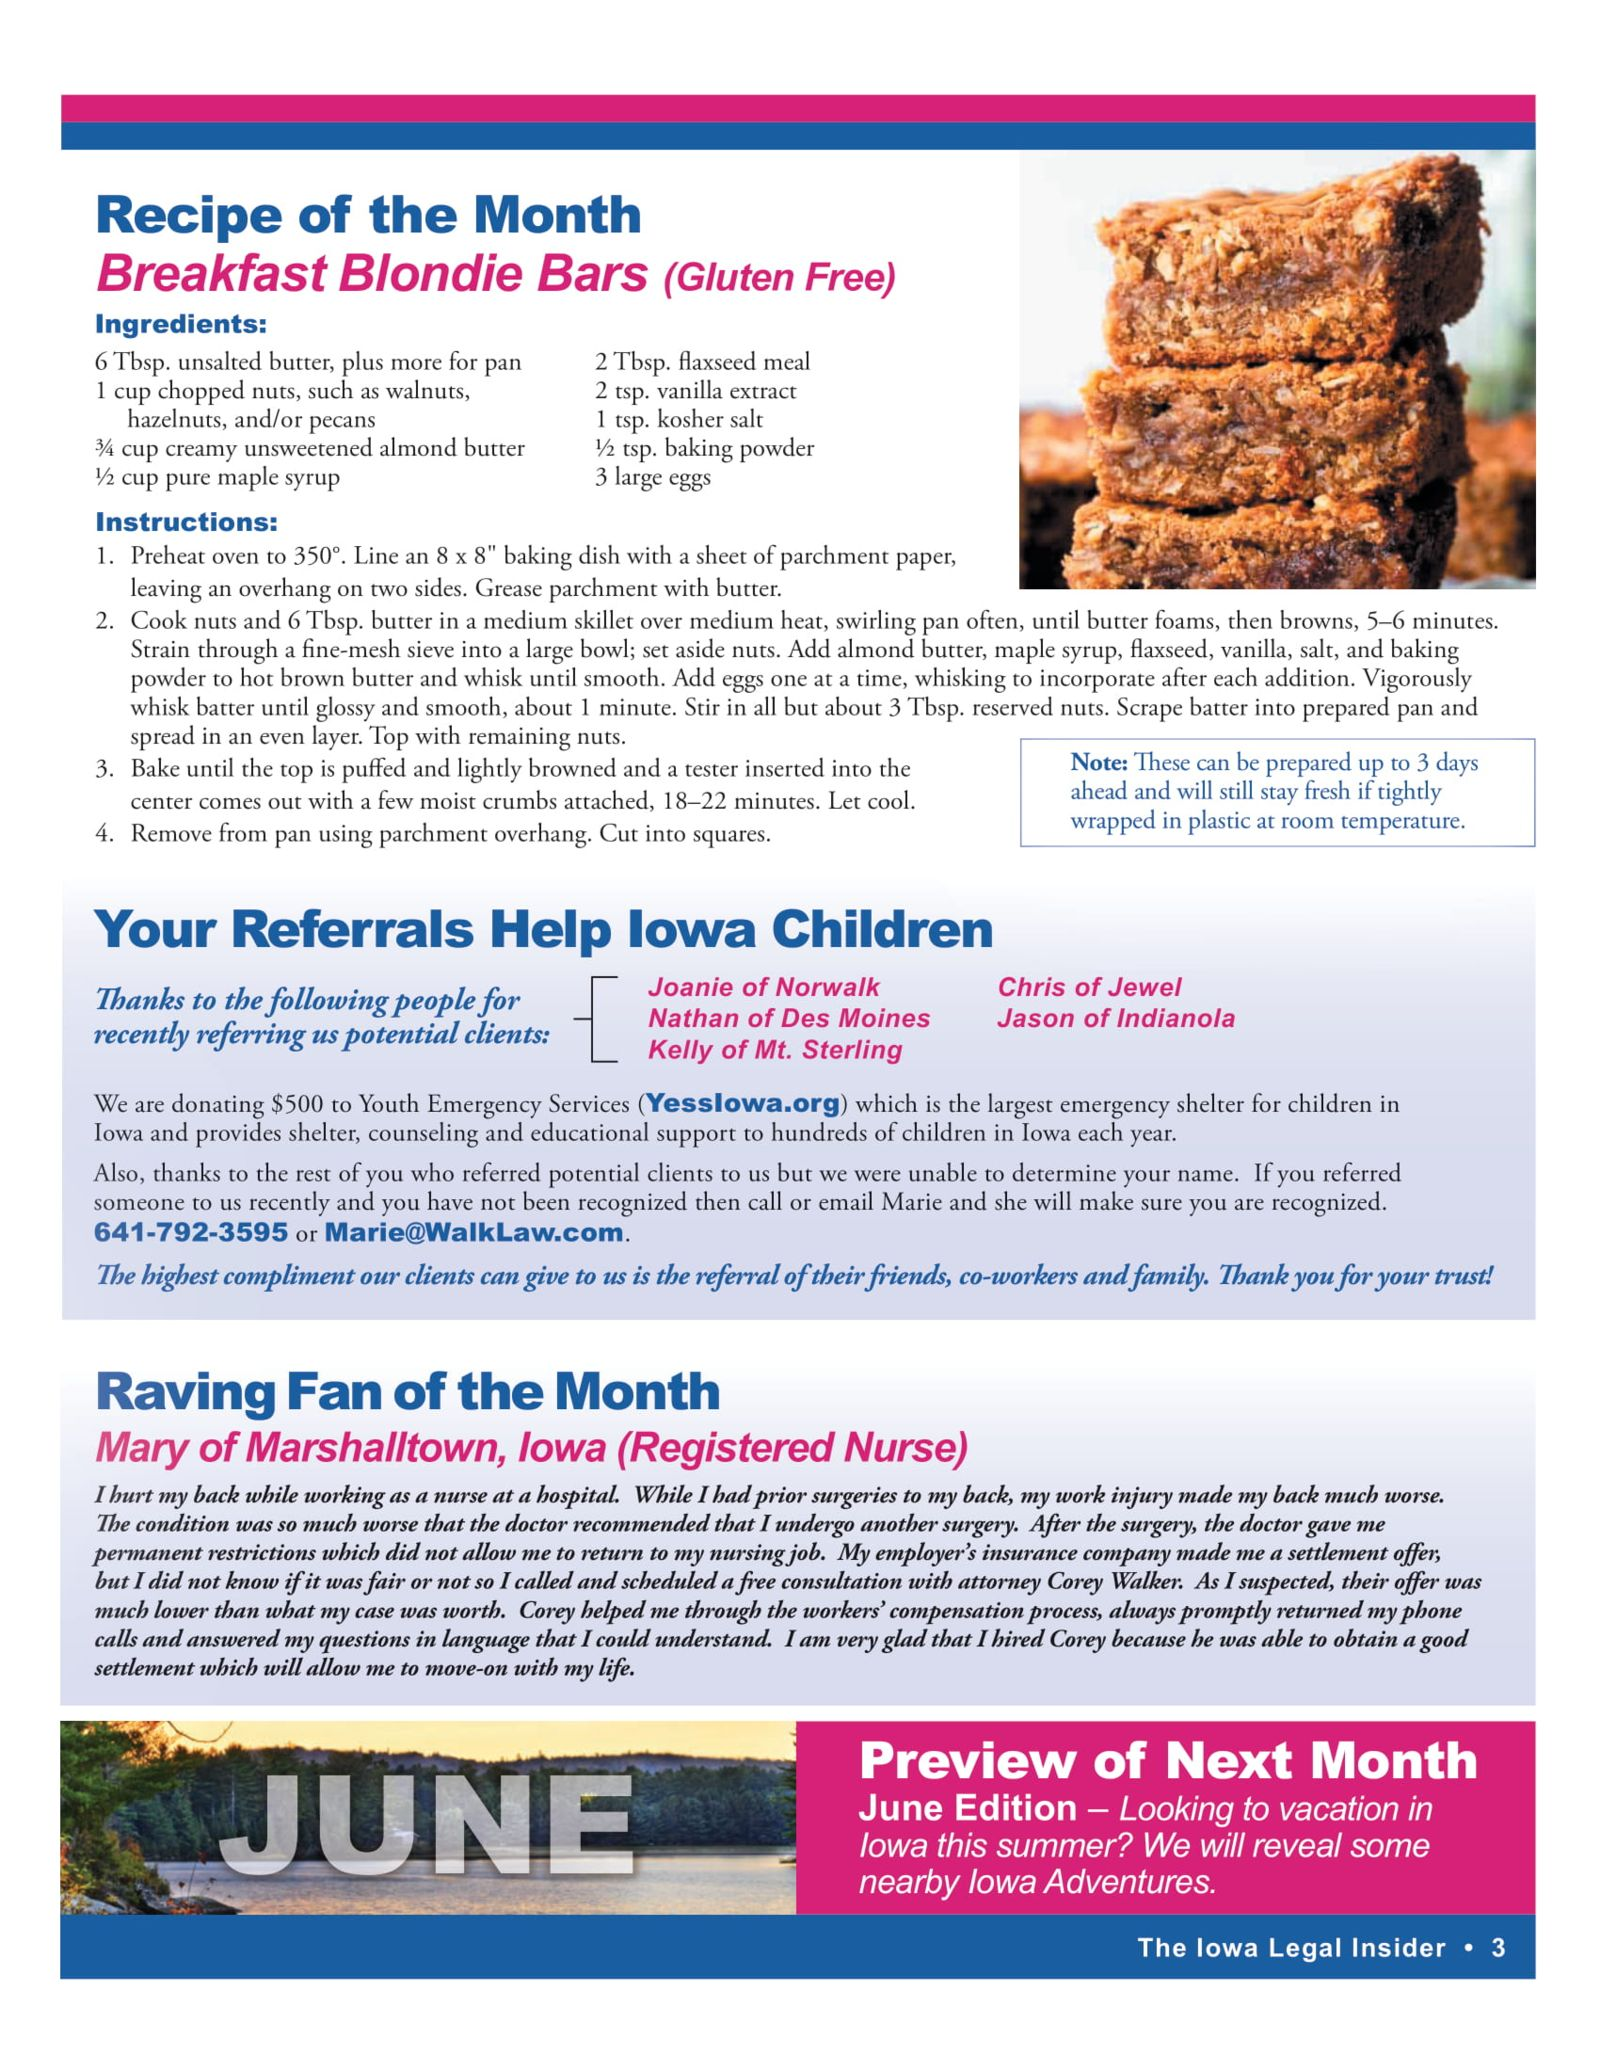 recipe of the month blondie bars